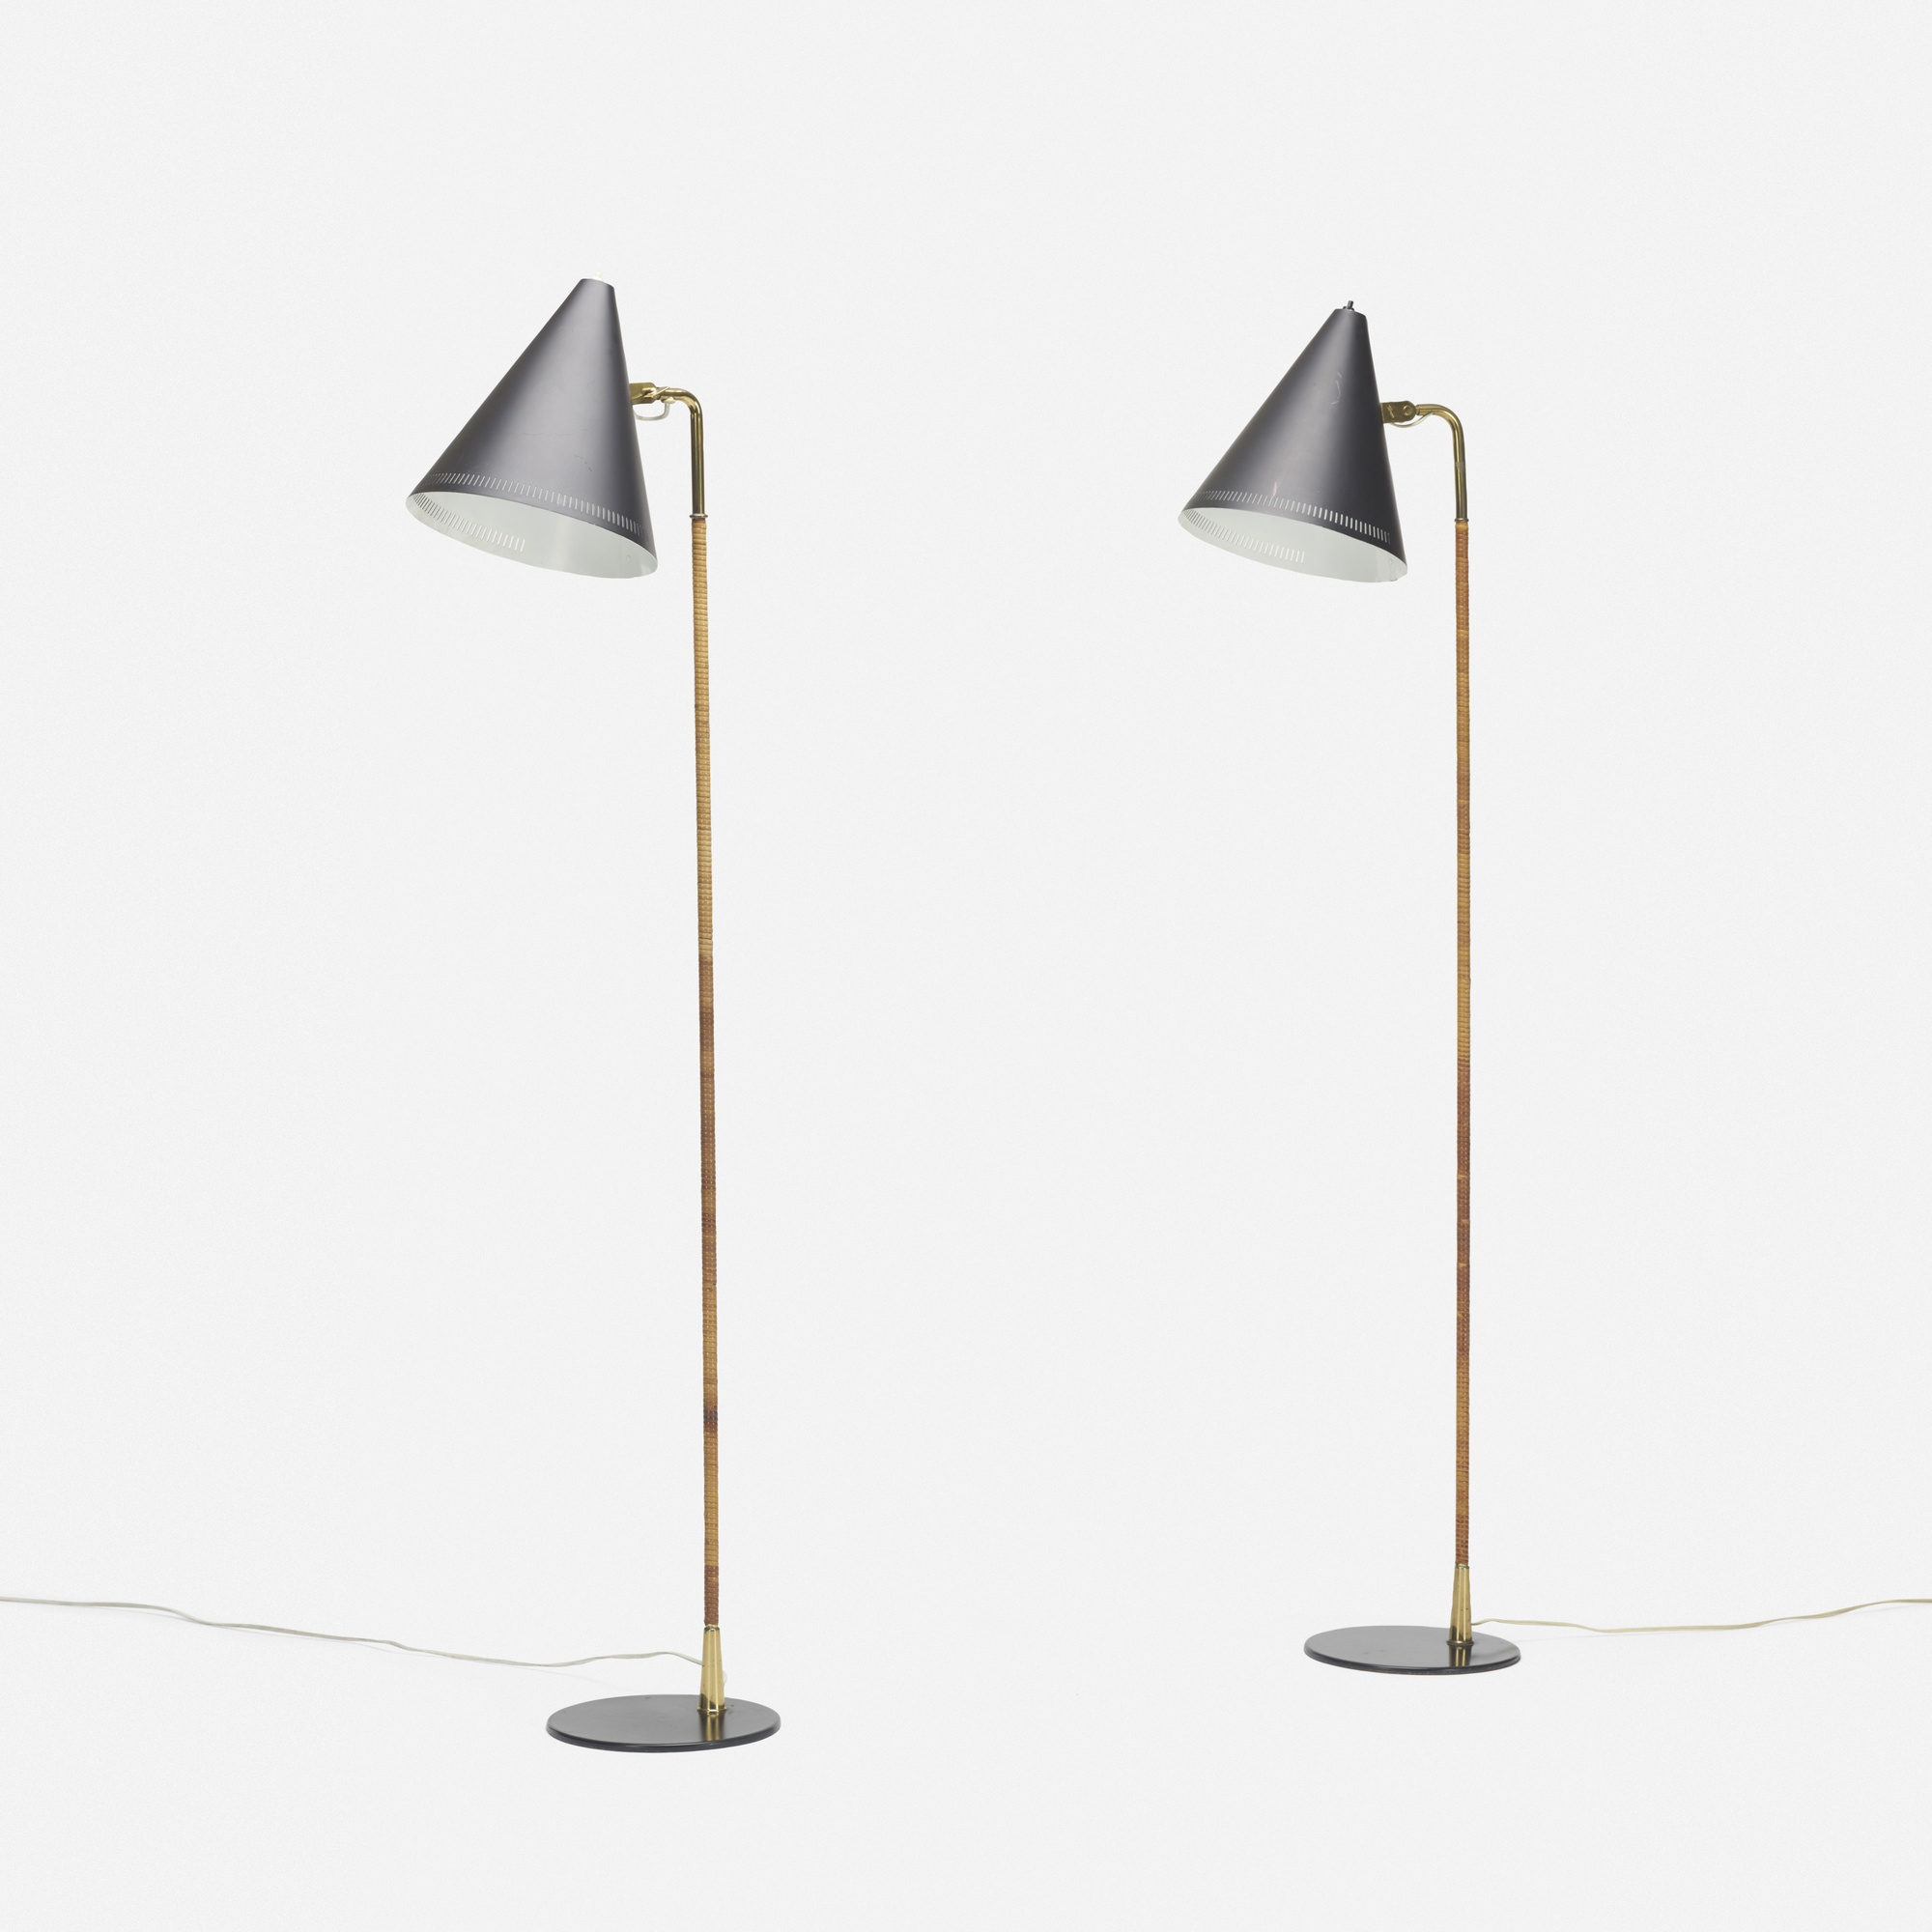 159: Paavo Tynell / floor lamps, pair (2 of 3)